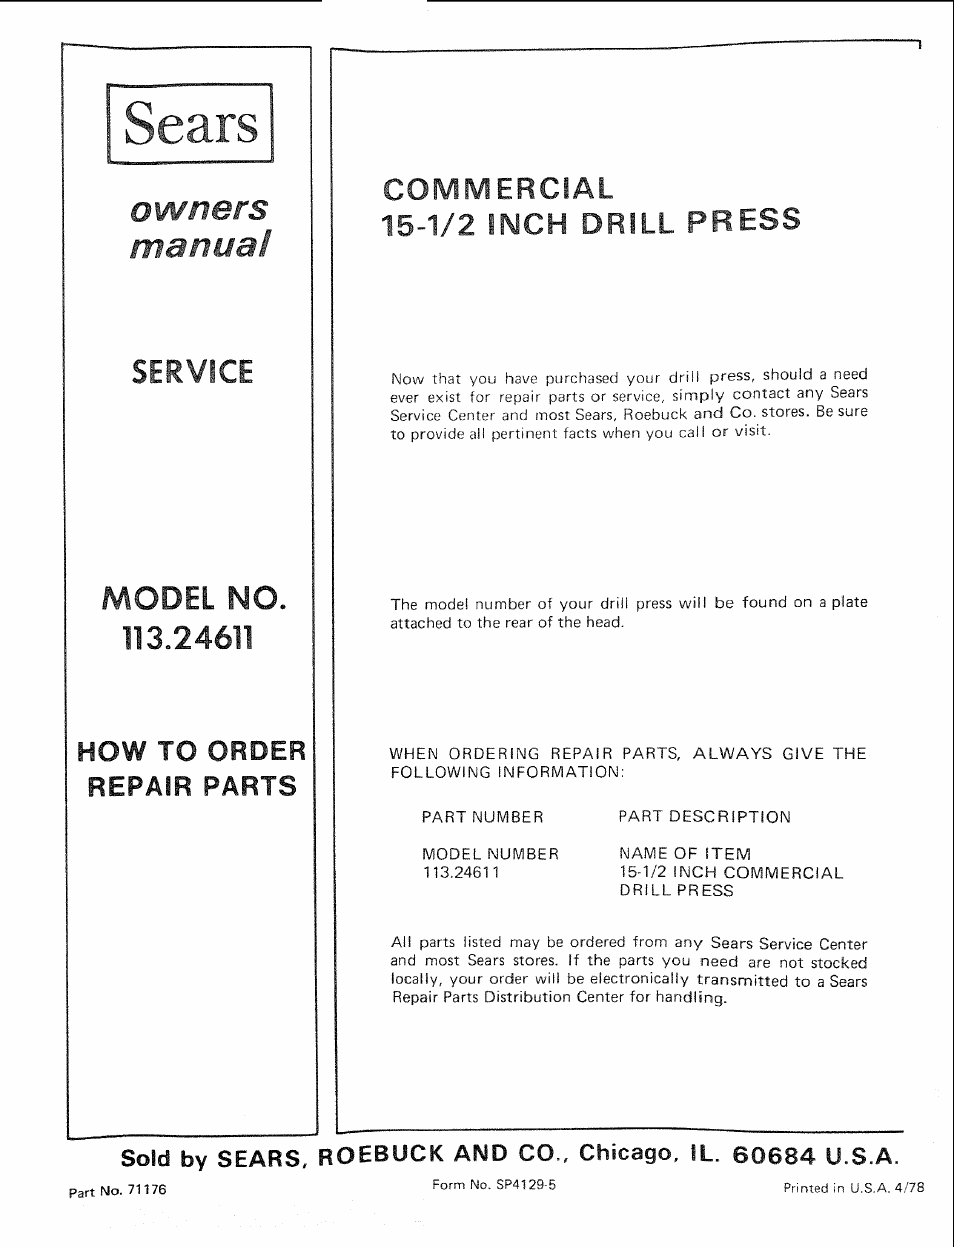 Sears, Commercial, 1/2 inch drill press | Sears 113.24611 User Manual |  Page 24 / 24